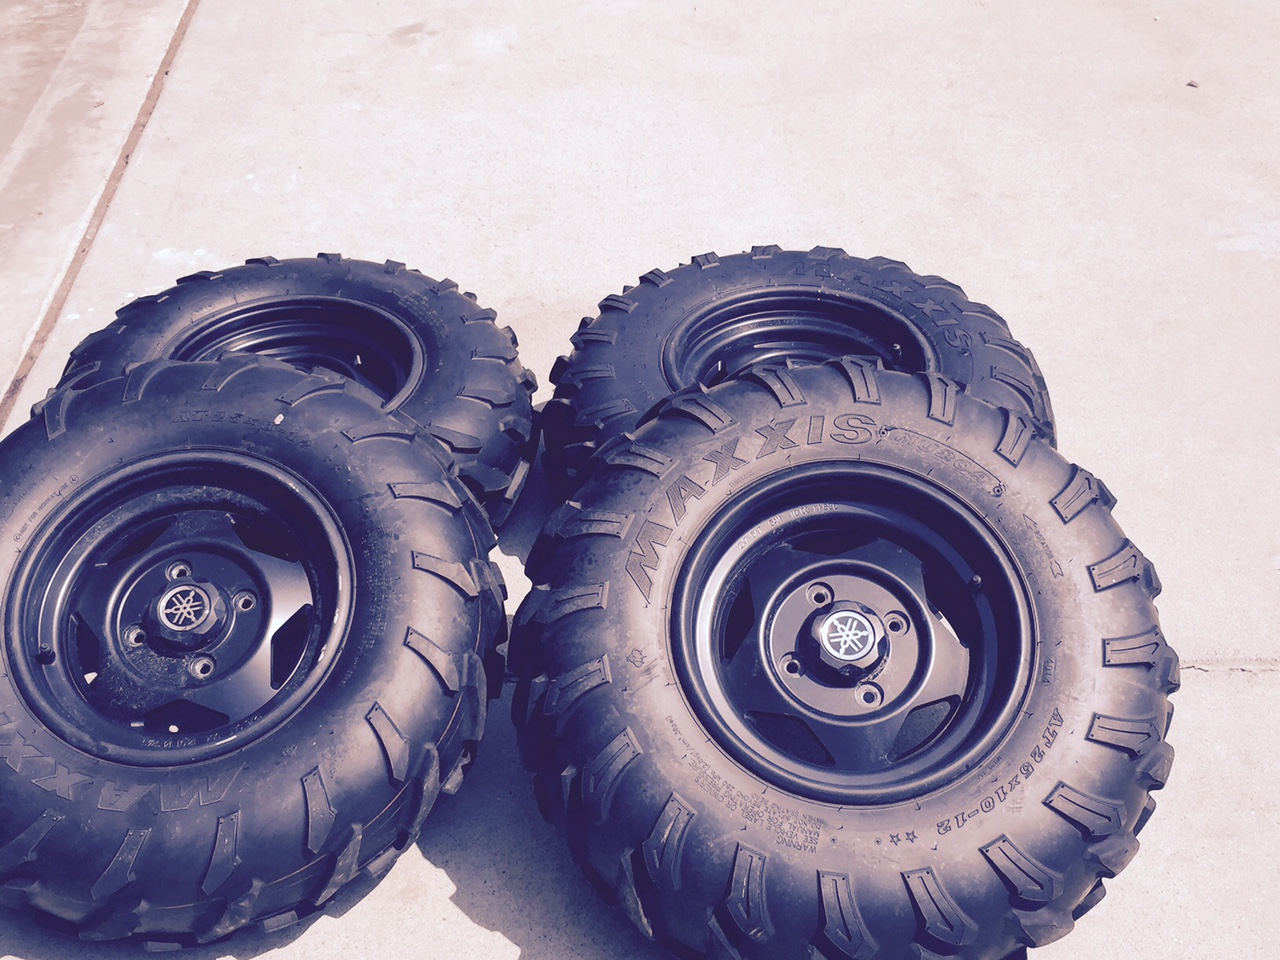 2015 Grizzly 700 Tires  Rims